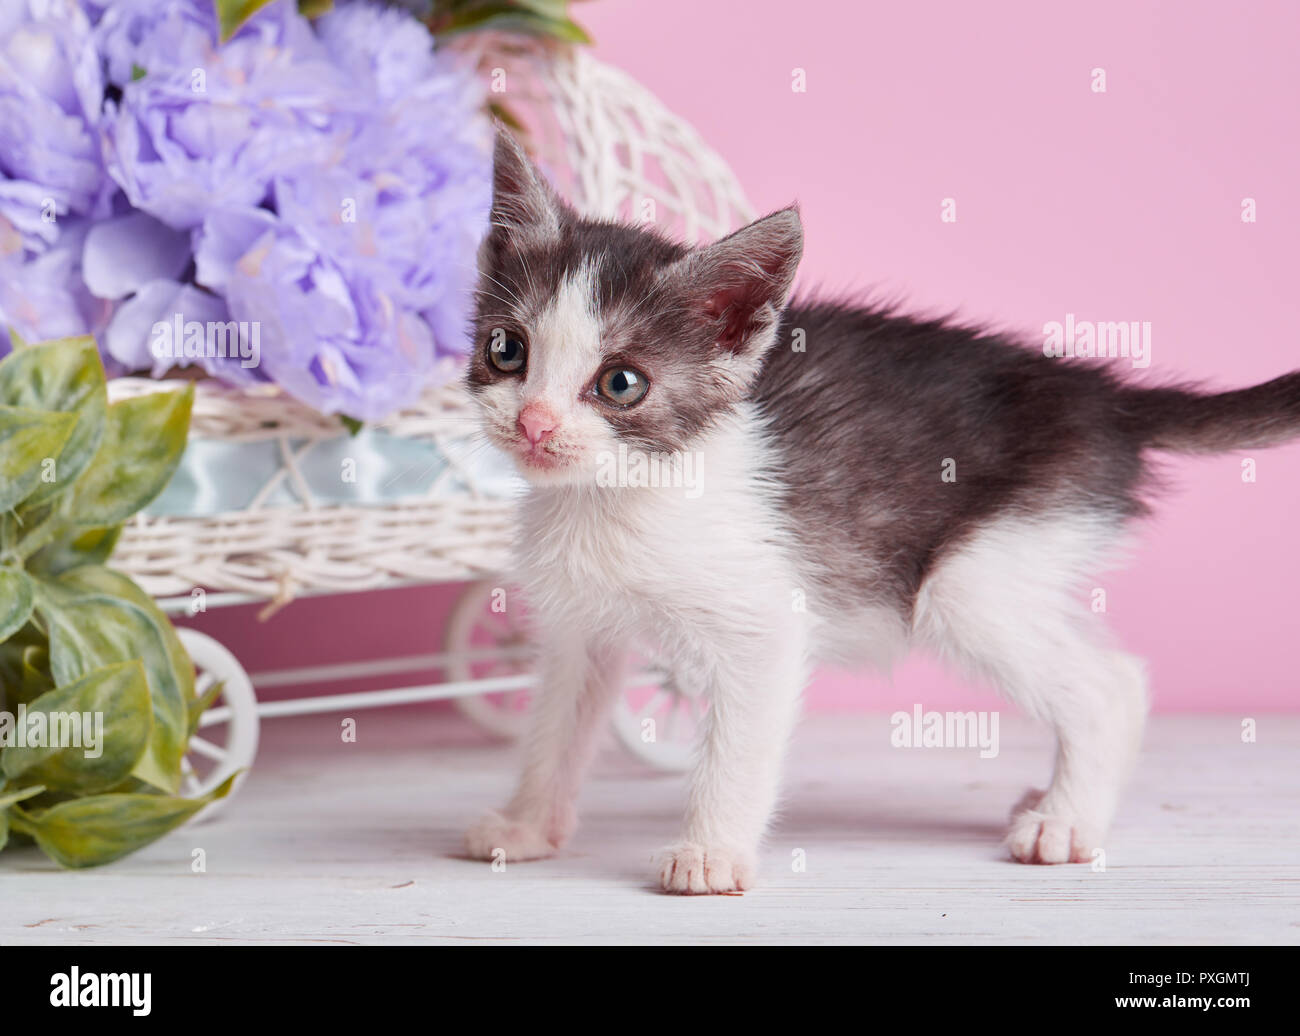 A beautiful kitty with decorations. White and gray kitten on a white table. - Stock Image